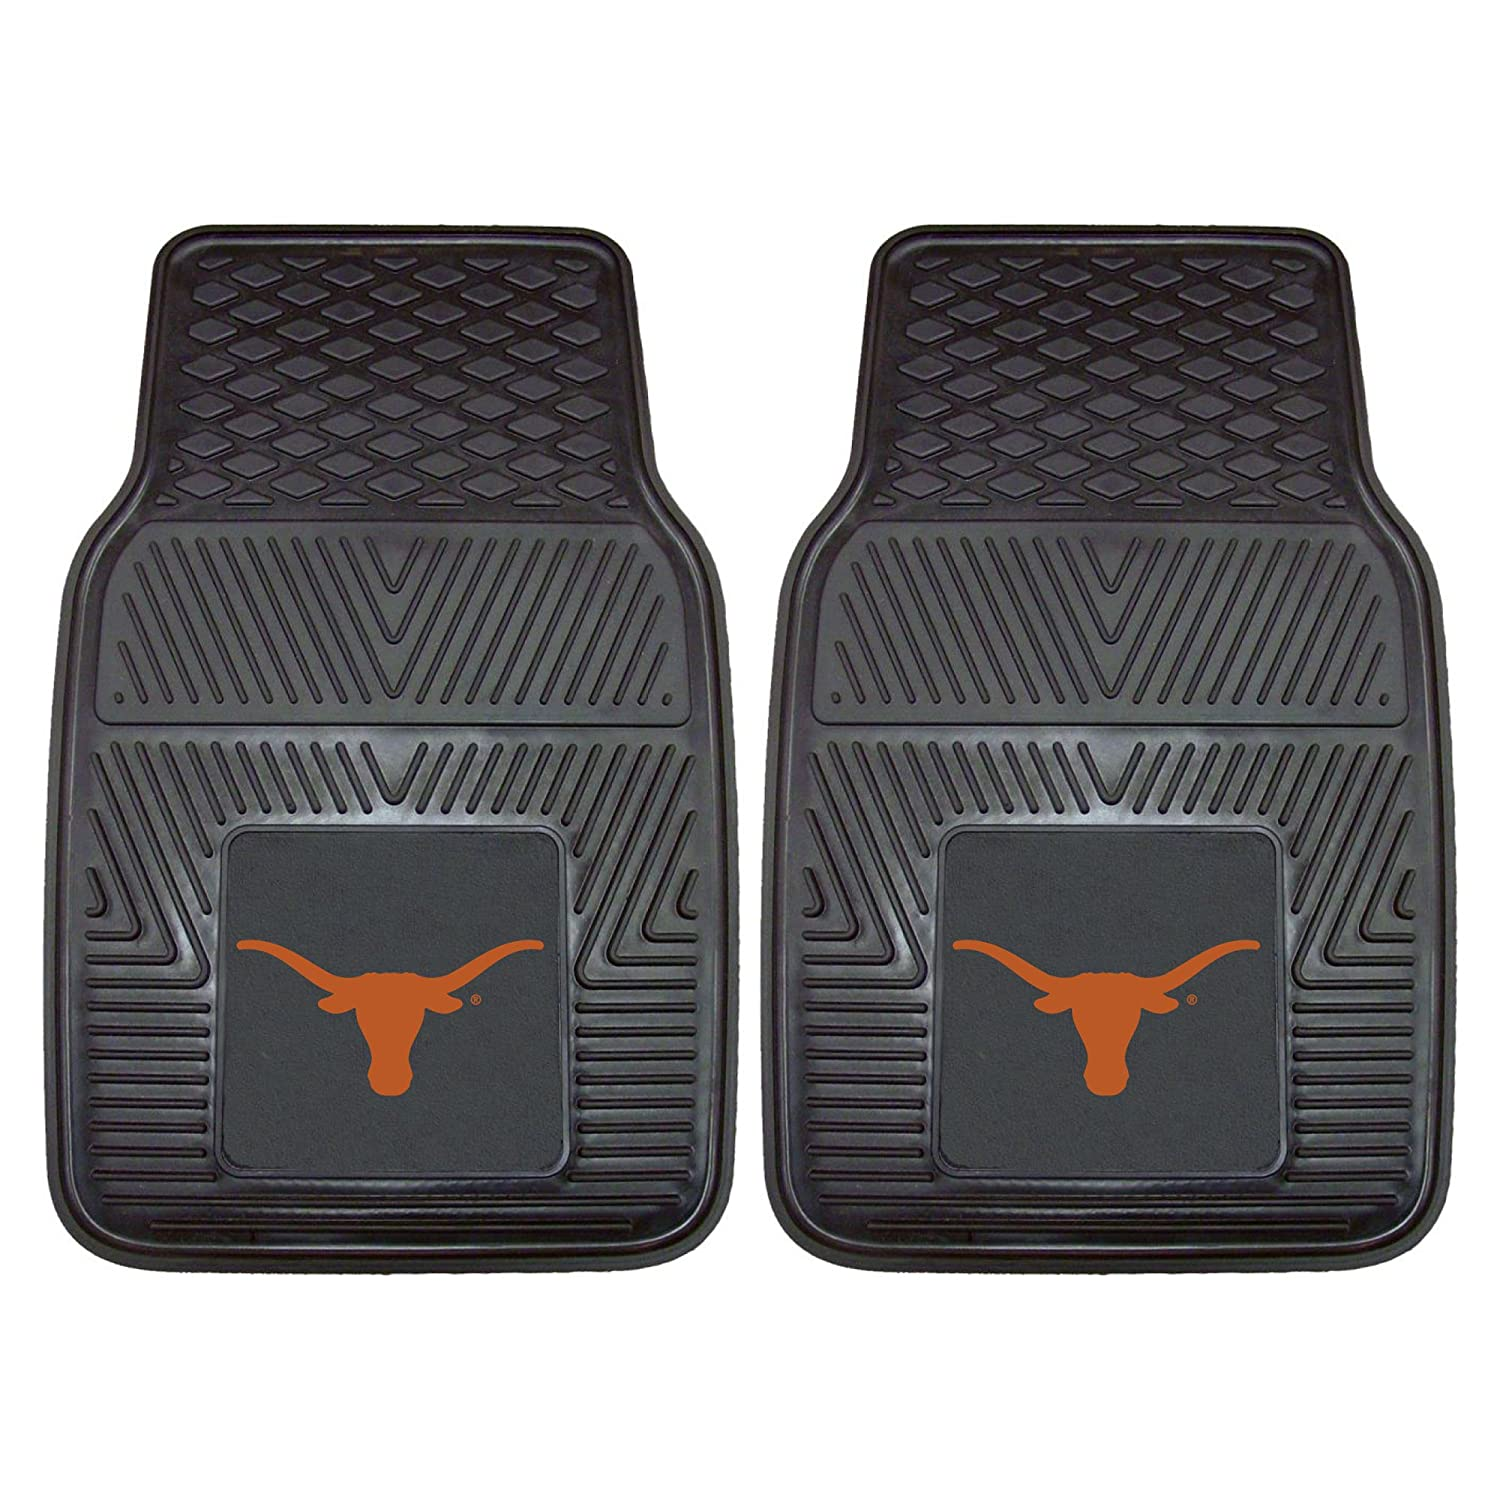 Texas Longhorns Car Mats Heavy Duty 2 Piece Vinyl Car Mats FanMats